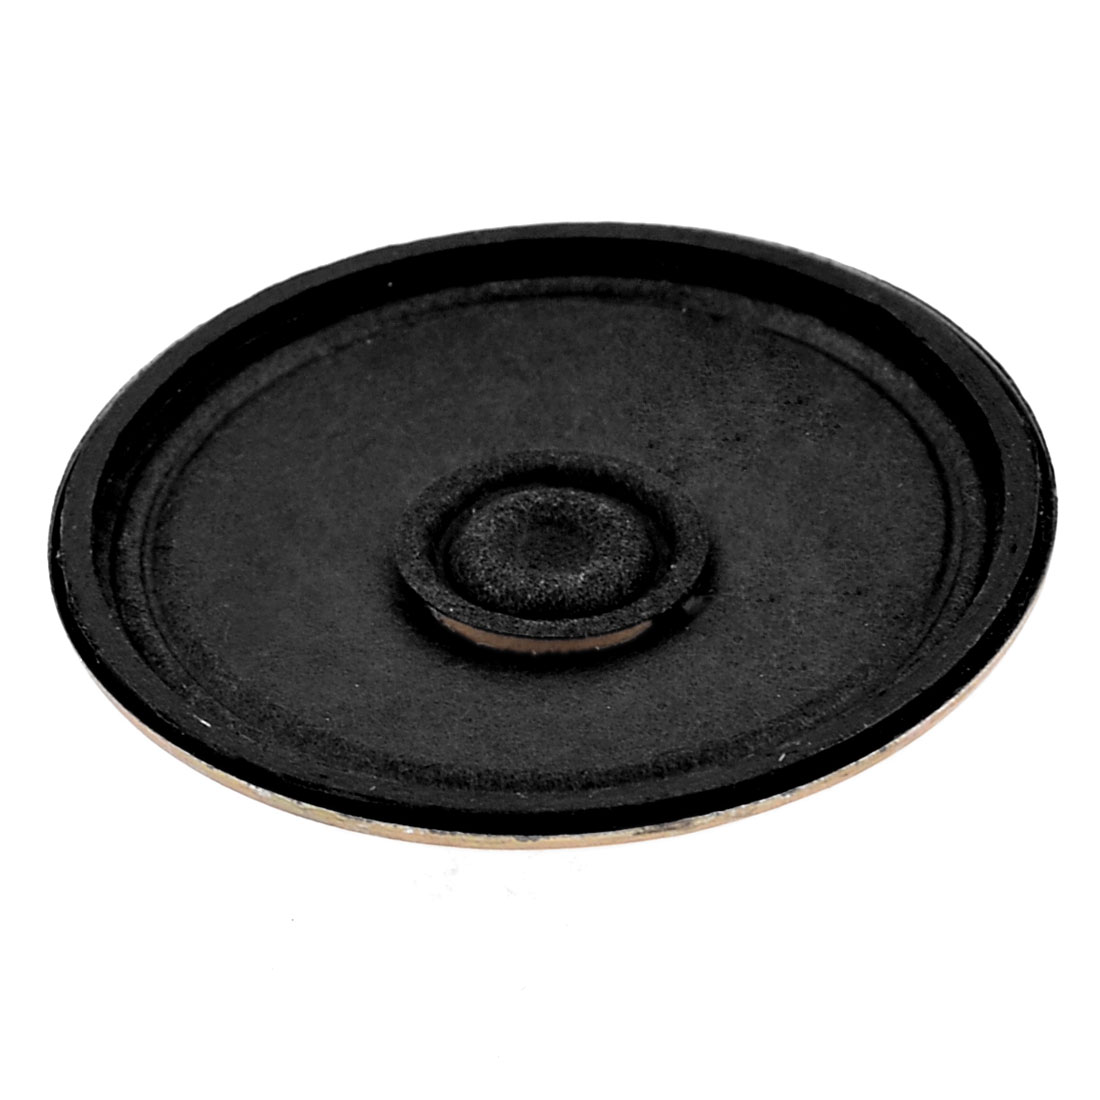 "1.97"" Diameter Round Slim External Magnet Speaker Horn 8 Ohm 5W"